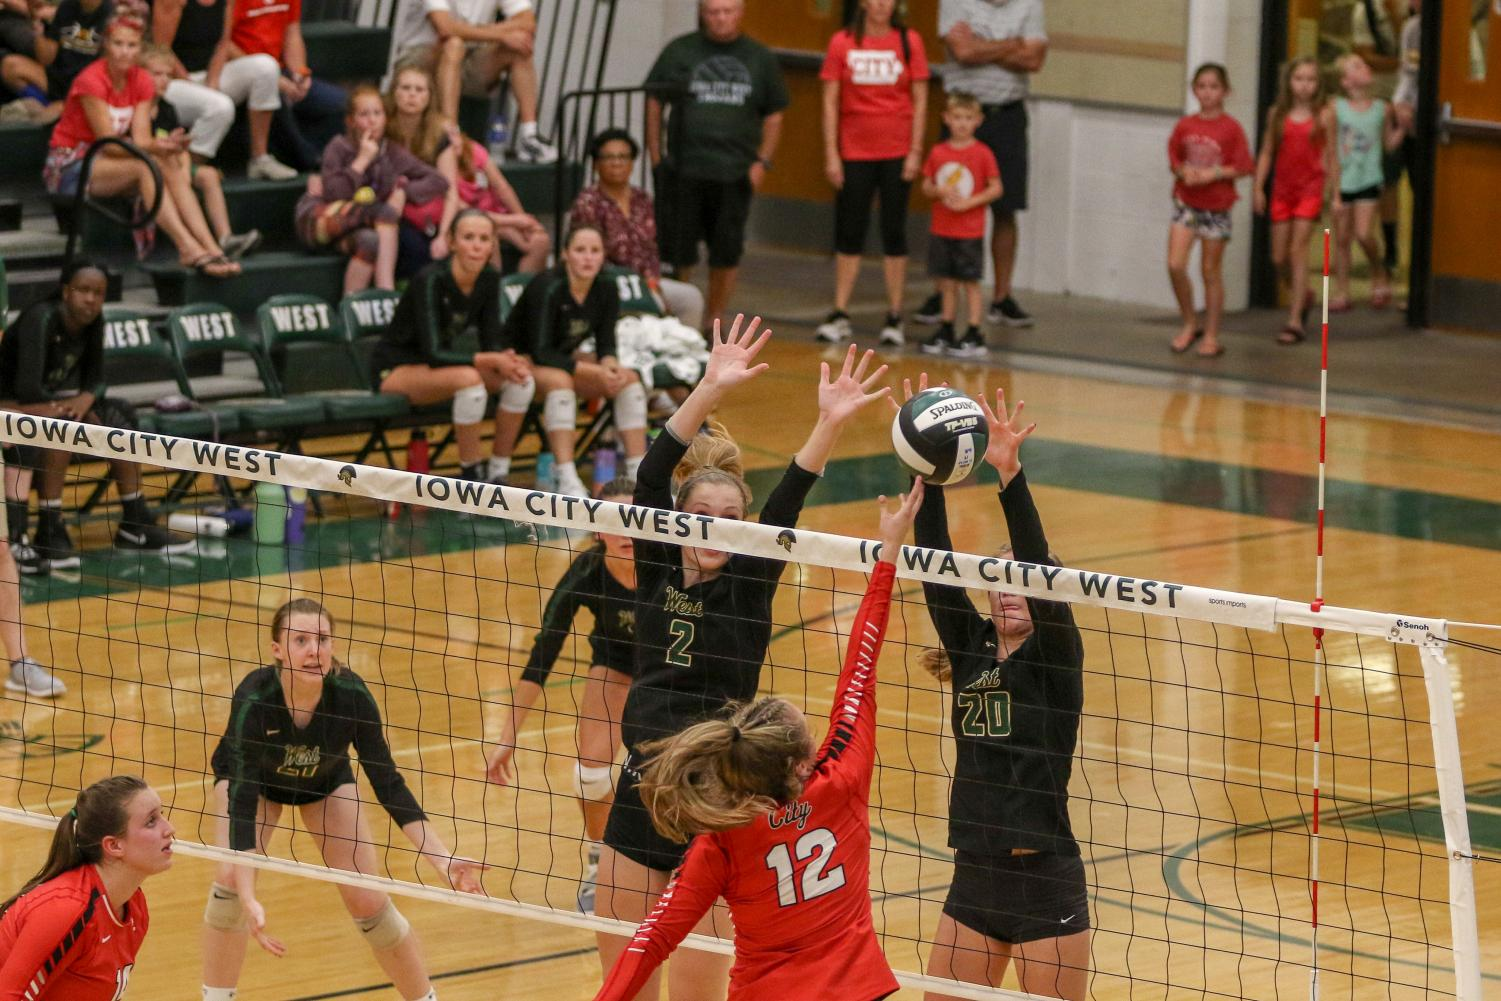 Natalie+Young+%2720+and+Ryann+Culver+%2721+block+the+ball+for+a+point+on+Tuesday%2C+August+27+during+the+Battle+for+the+Spike.